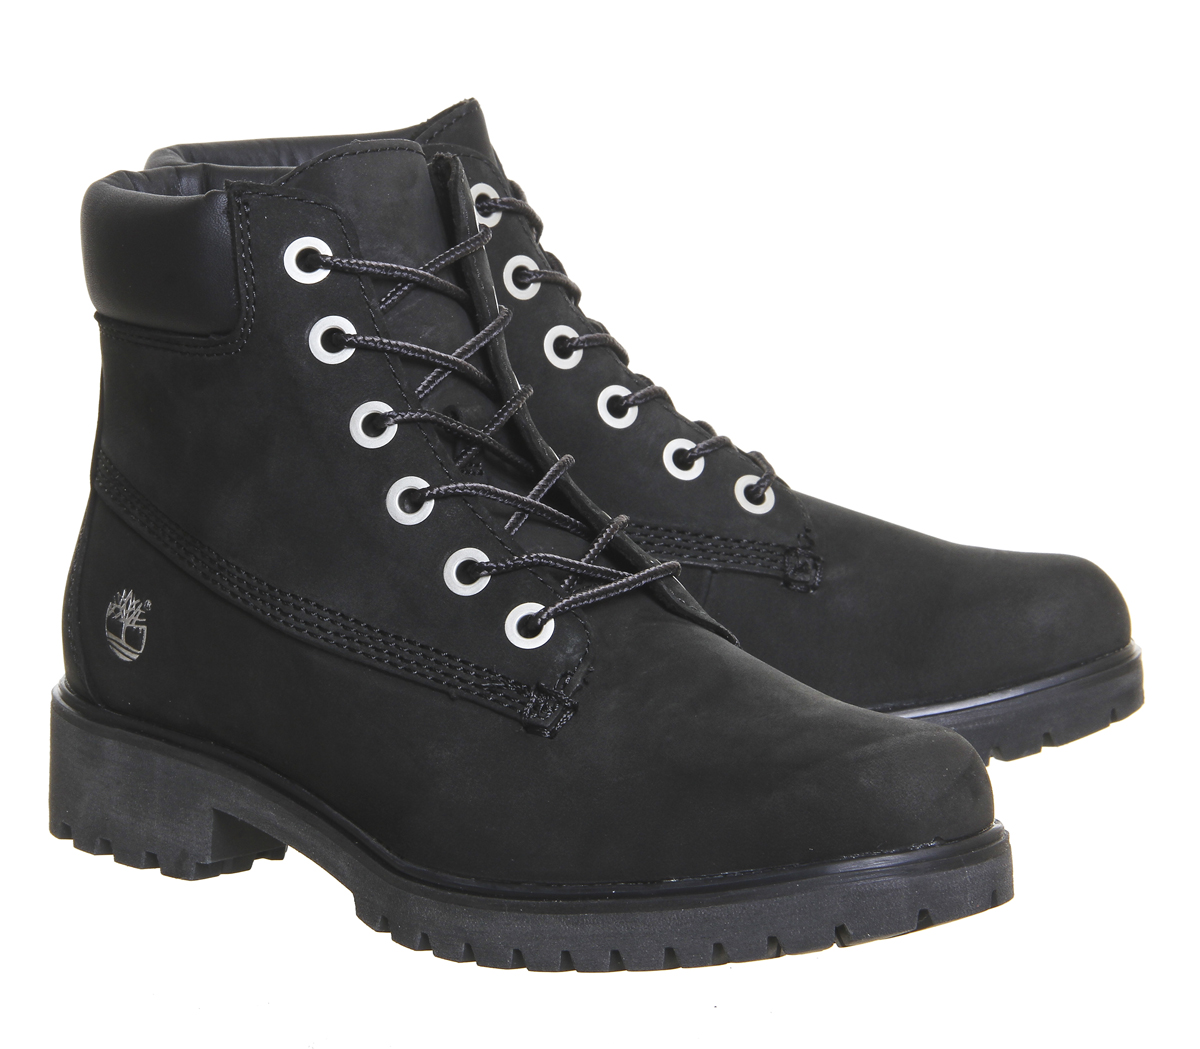 Details about Womens Timberland Slim Premium 6 Inch Boots Black Nubuck